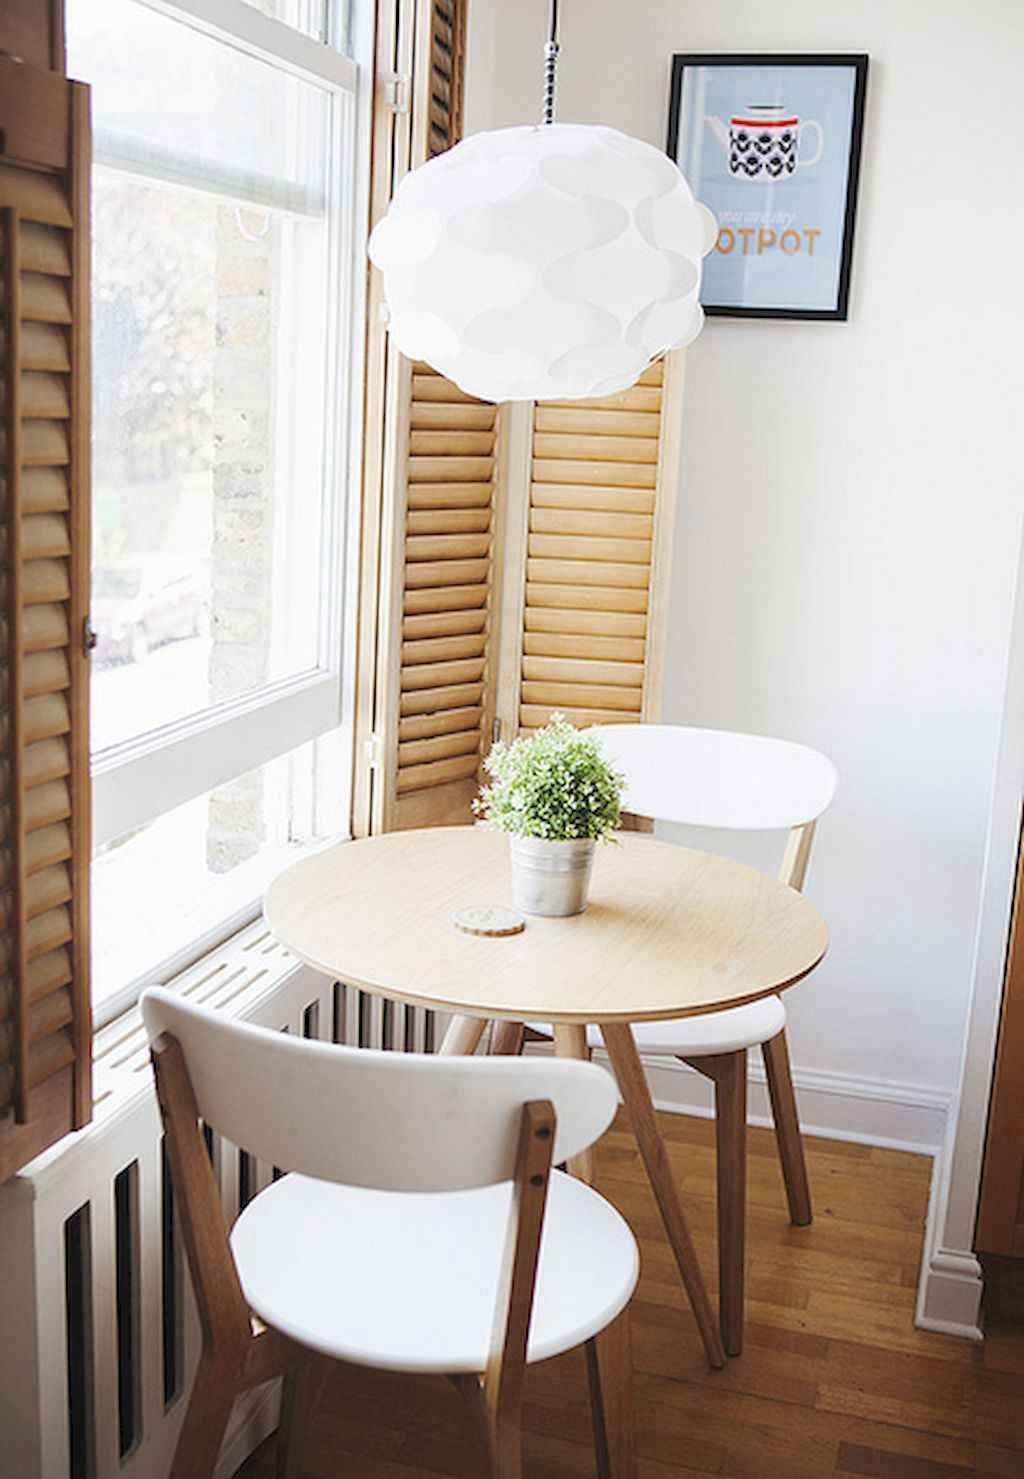 Small dining room table and chair ideas on a budget (52)